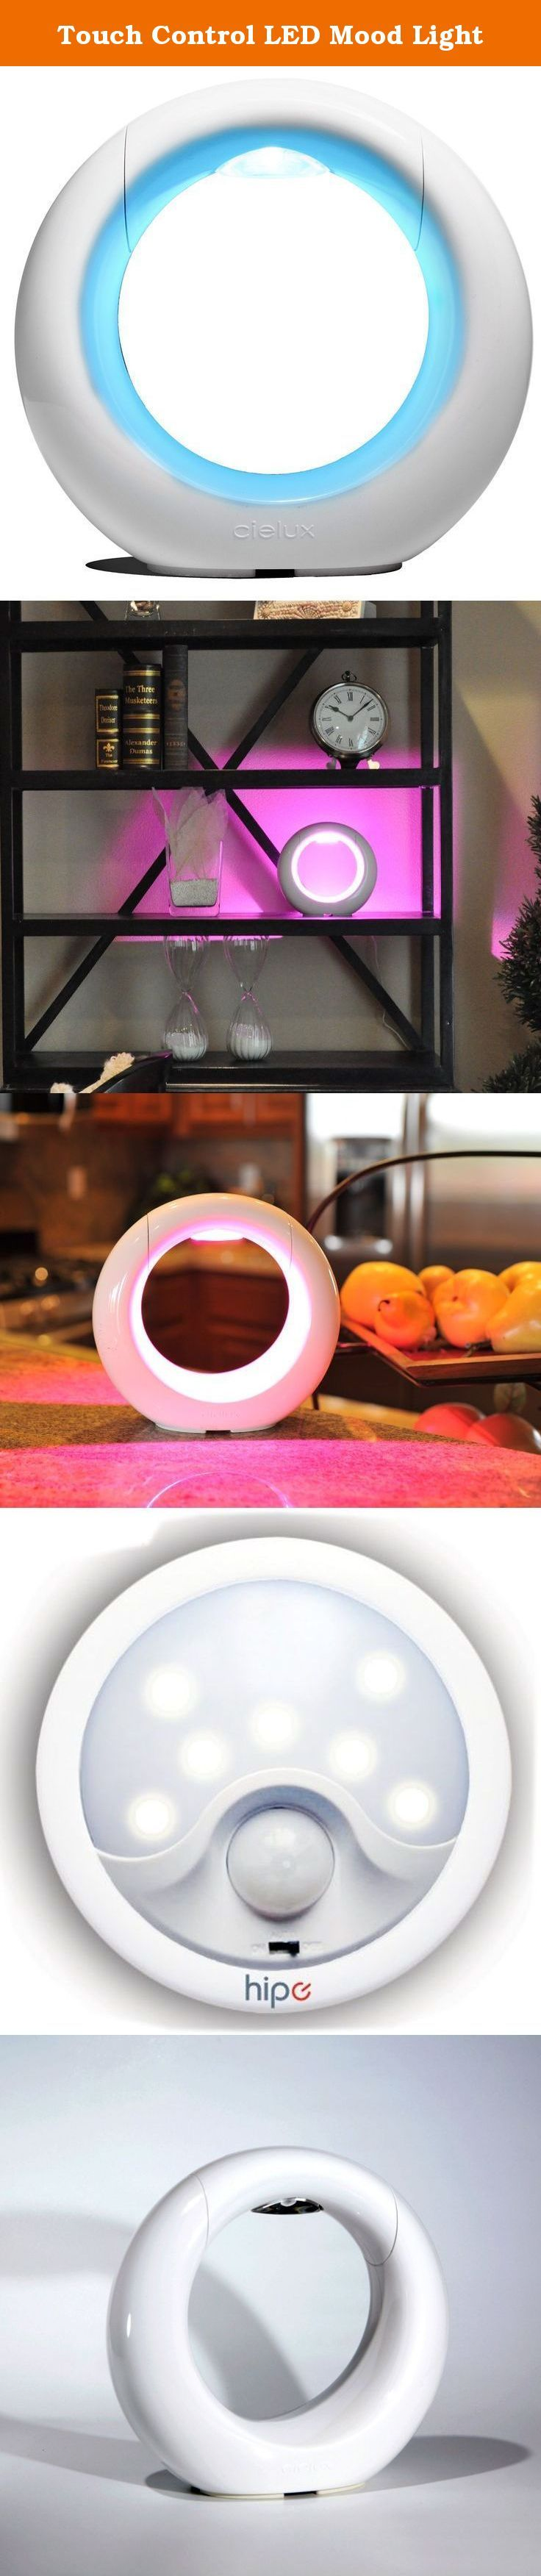 Touch Control LED Mood Light. The Touch Control LED Mood Light puts you in charge of creating an atmosphere in your home or office with a palette of hues that span the entire color spectrum. Create the perfect ambiance, enhance your decor, rev up your energy level or soothe your emotions. The Touch Control LED Mood Light is a creative tool for instantly coloring your world. Simply tap the touch pad on the sculptural table lamp to shift colors, dim or brighten the light, or create your own...